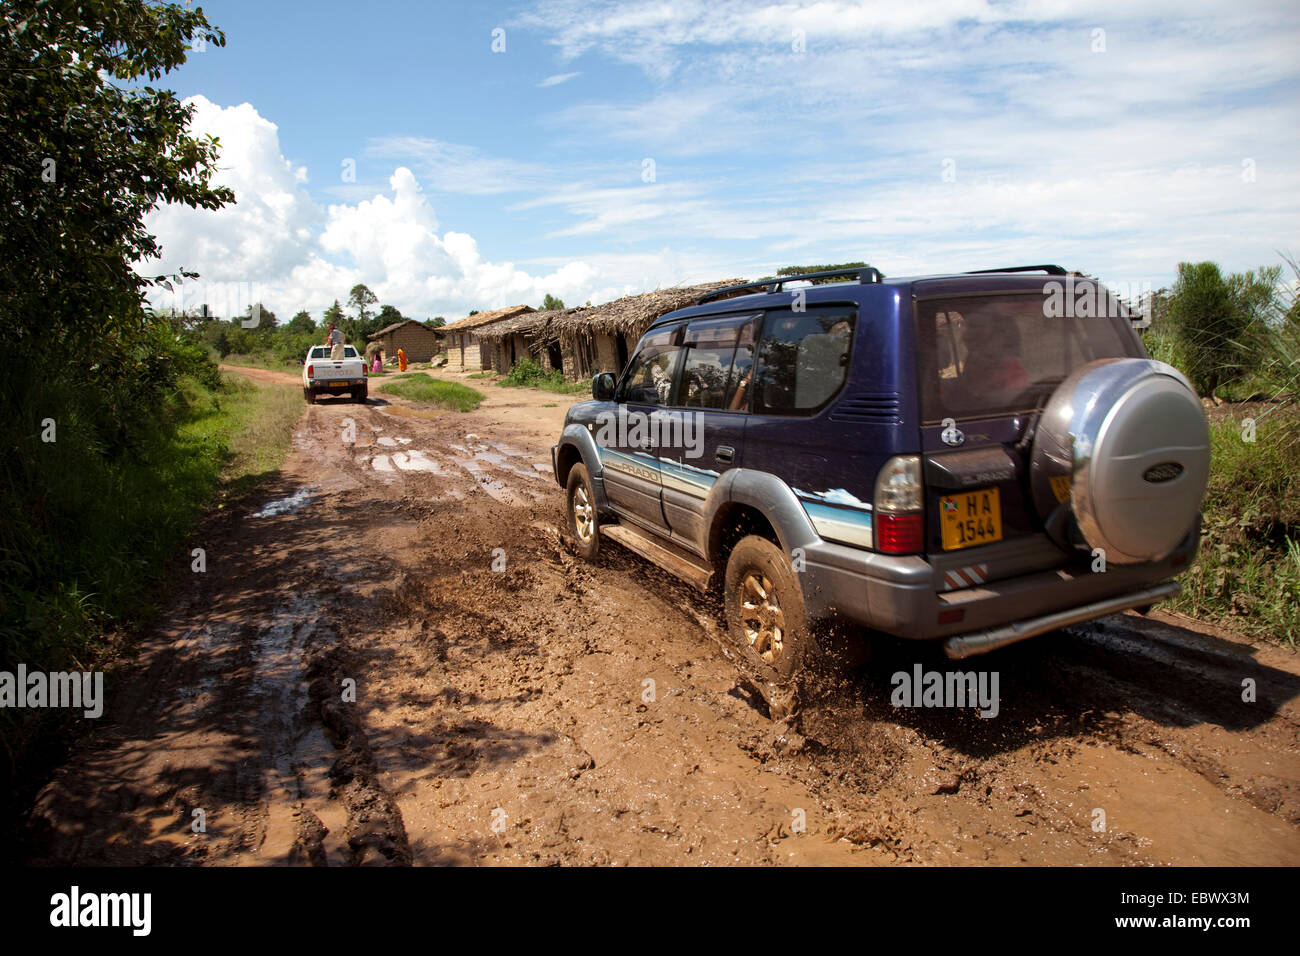 cross-country vehicles driving through a mud pit on a soil road through bush landscape passing humble huts, Burundi, - Stock Image